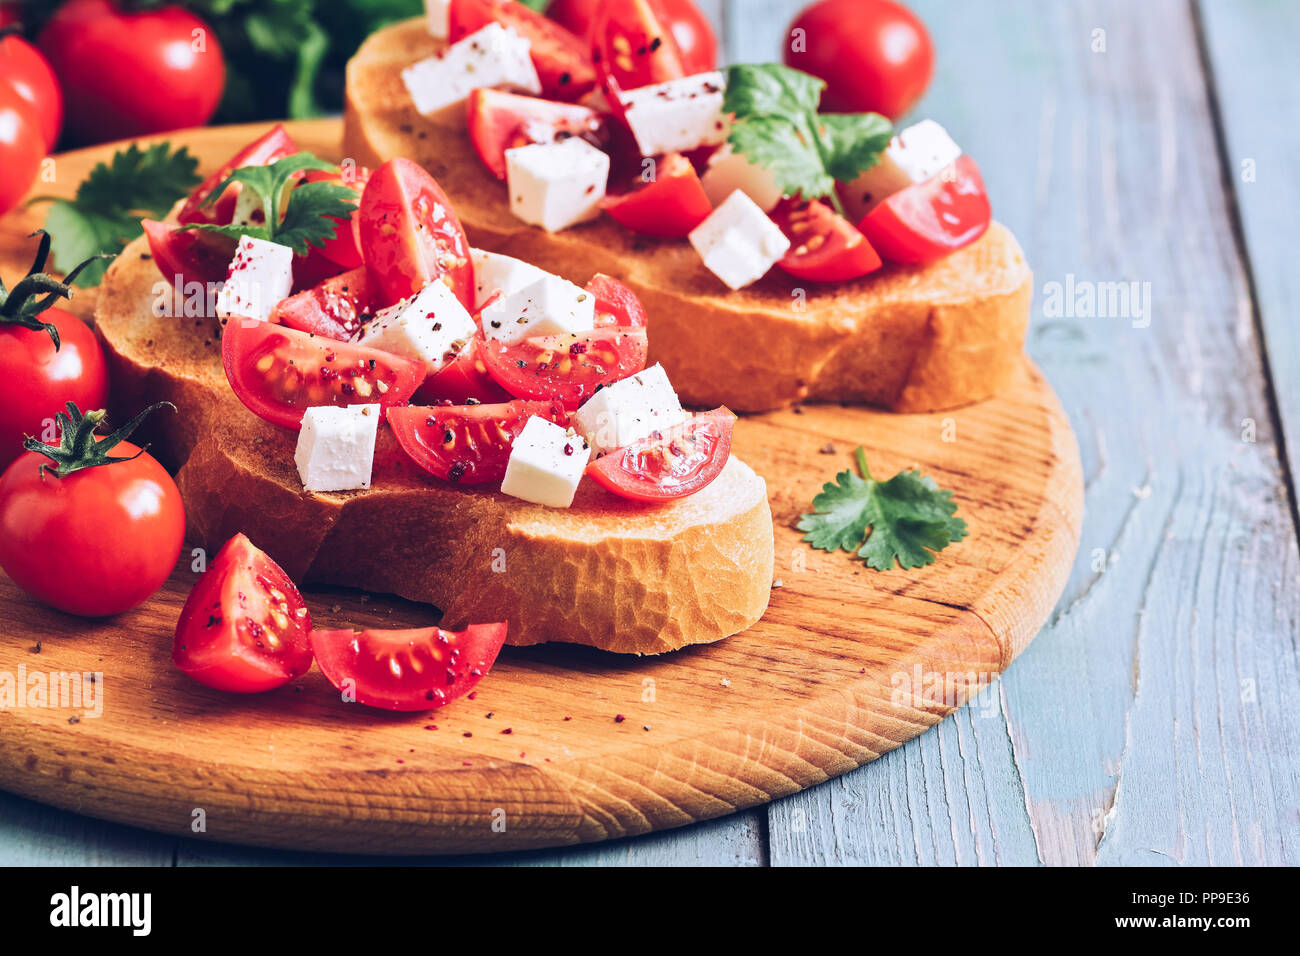 Bruschetta With Tomatoes Cheese And Greens On Toasted Bread Traditional Italian Food Selective Focus Stock Photo Alamy